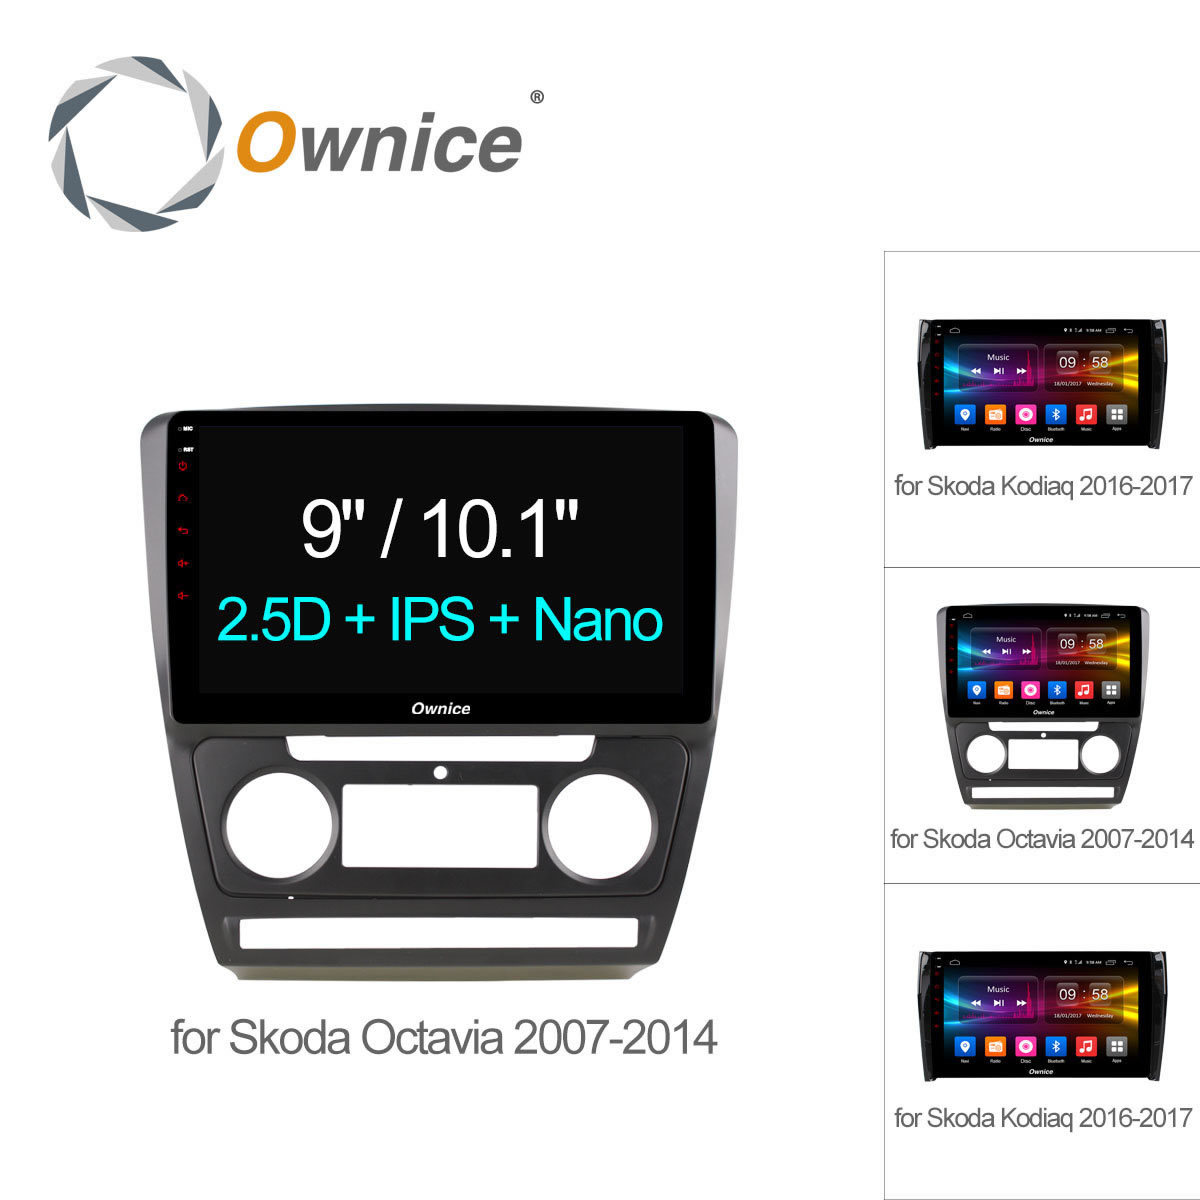 Ownice C500 10.1 Octa Octa core Android 6.0 Car DVD Player GPS Navigation for Skoda Octavia 2007 2008 KODIAQ 4G SIM TPMS DAB